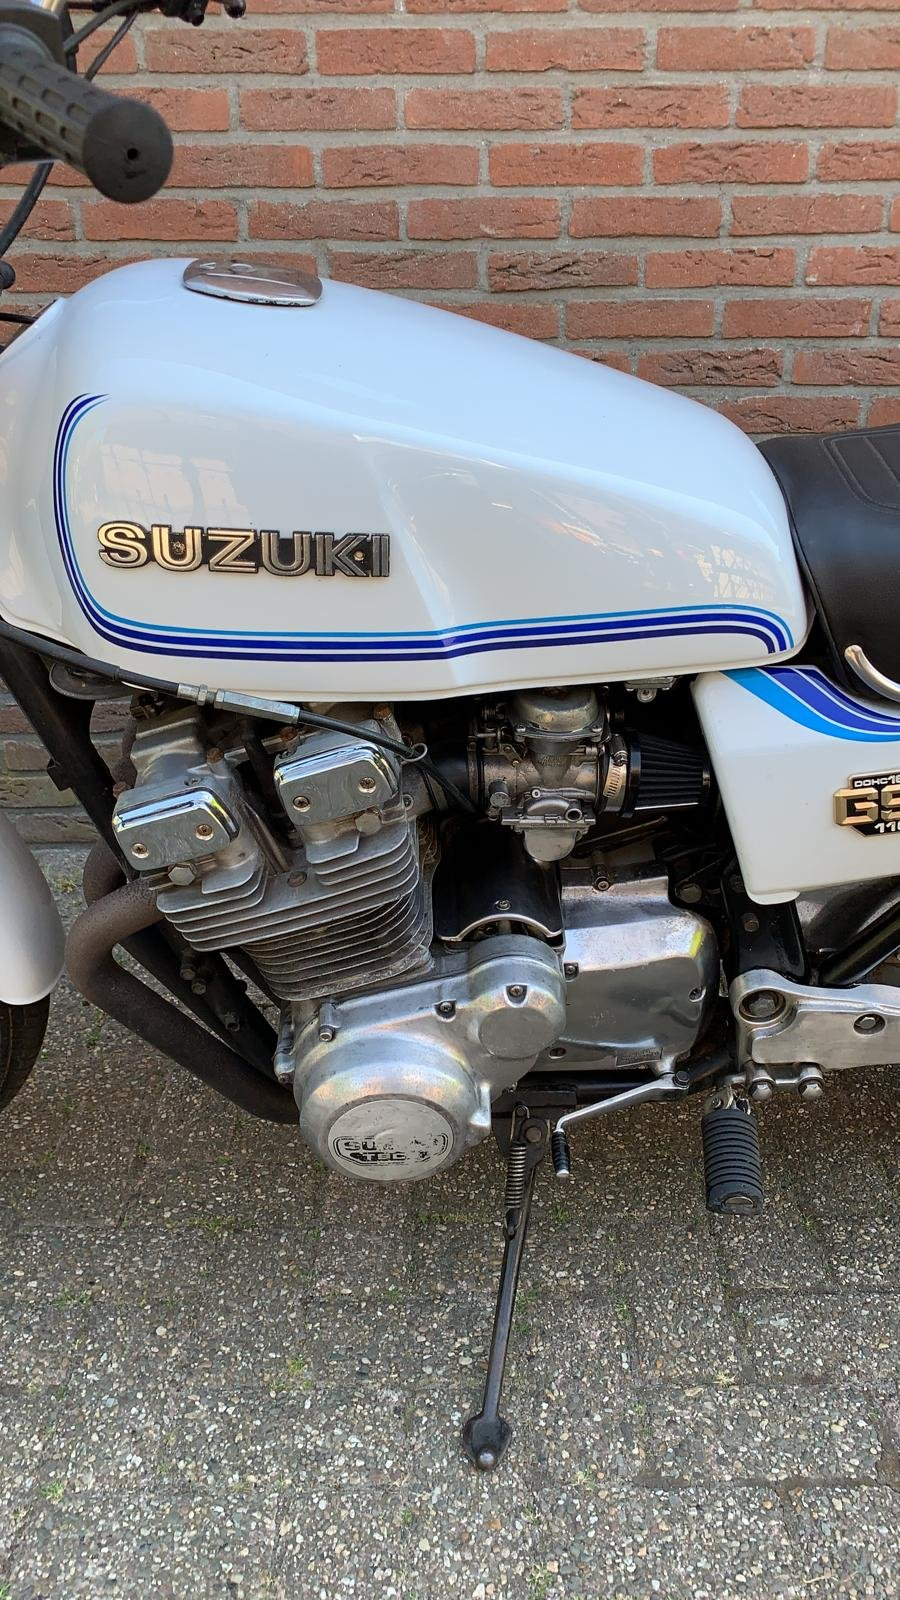 1980 Suzuki GSX 1100 naked version  For Sale (picture 6 of 6)